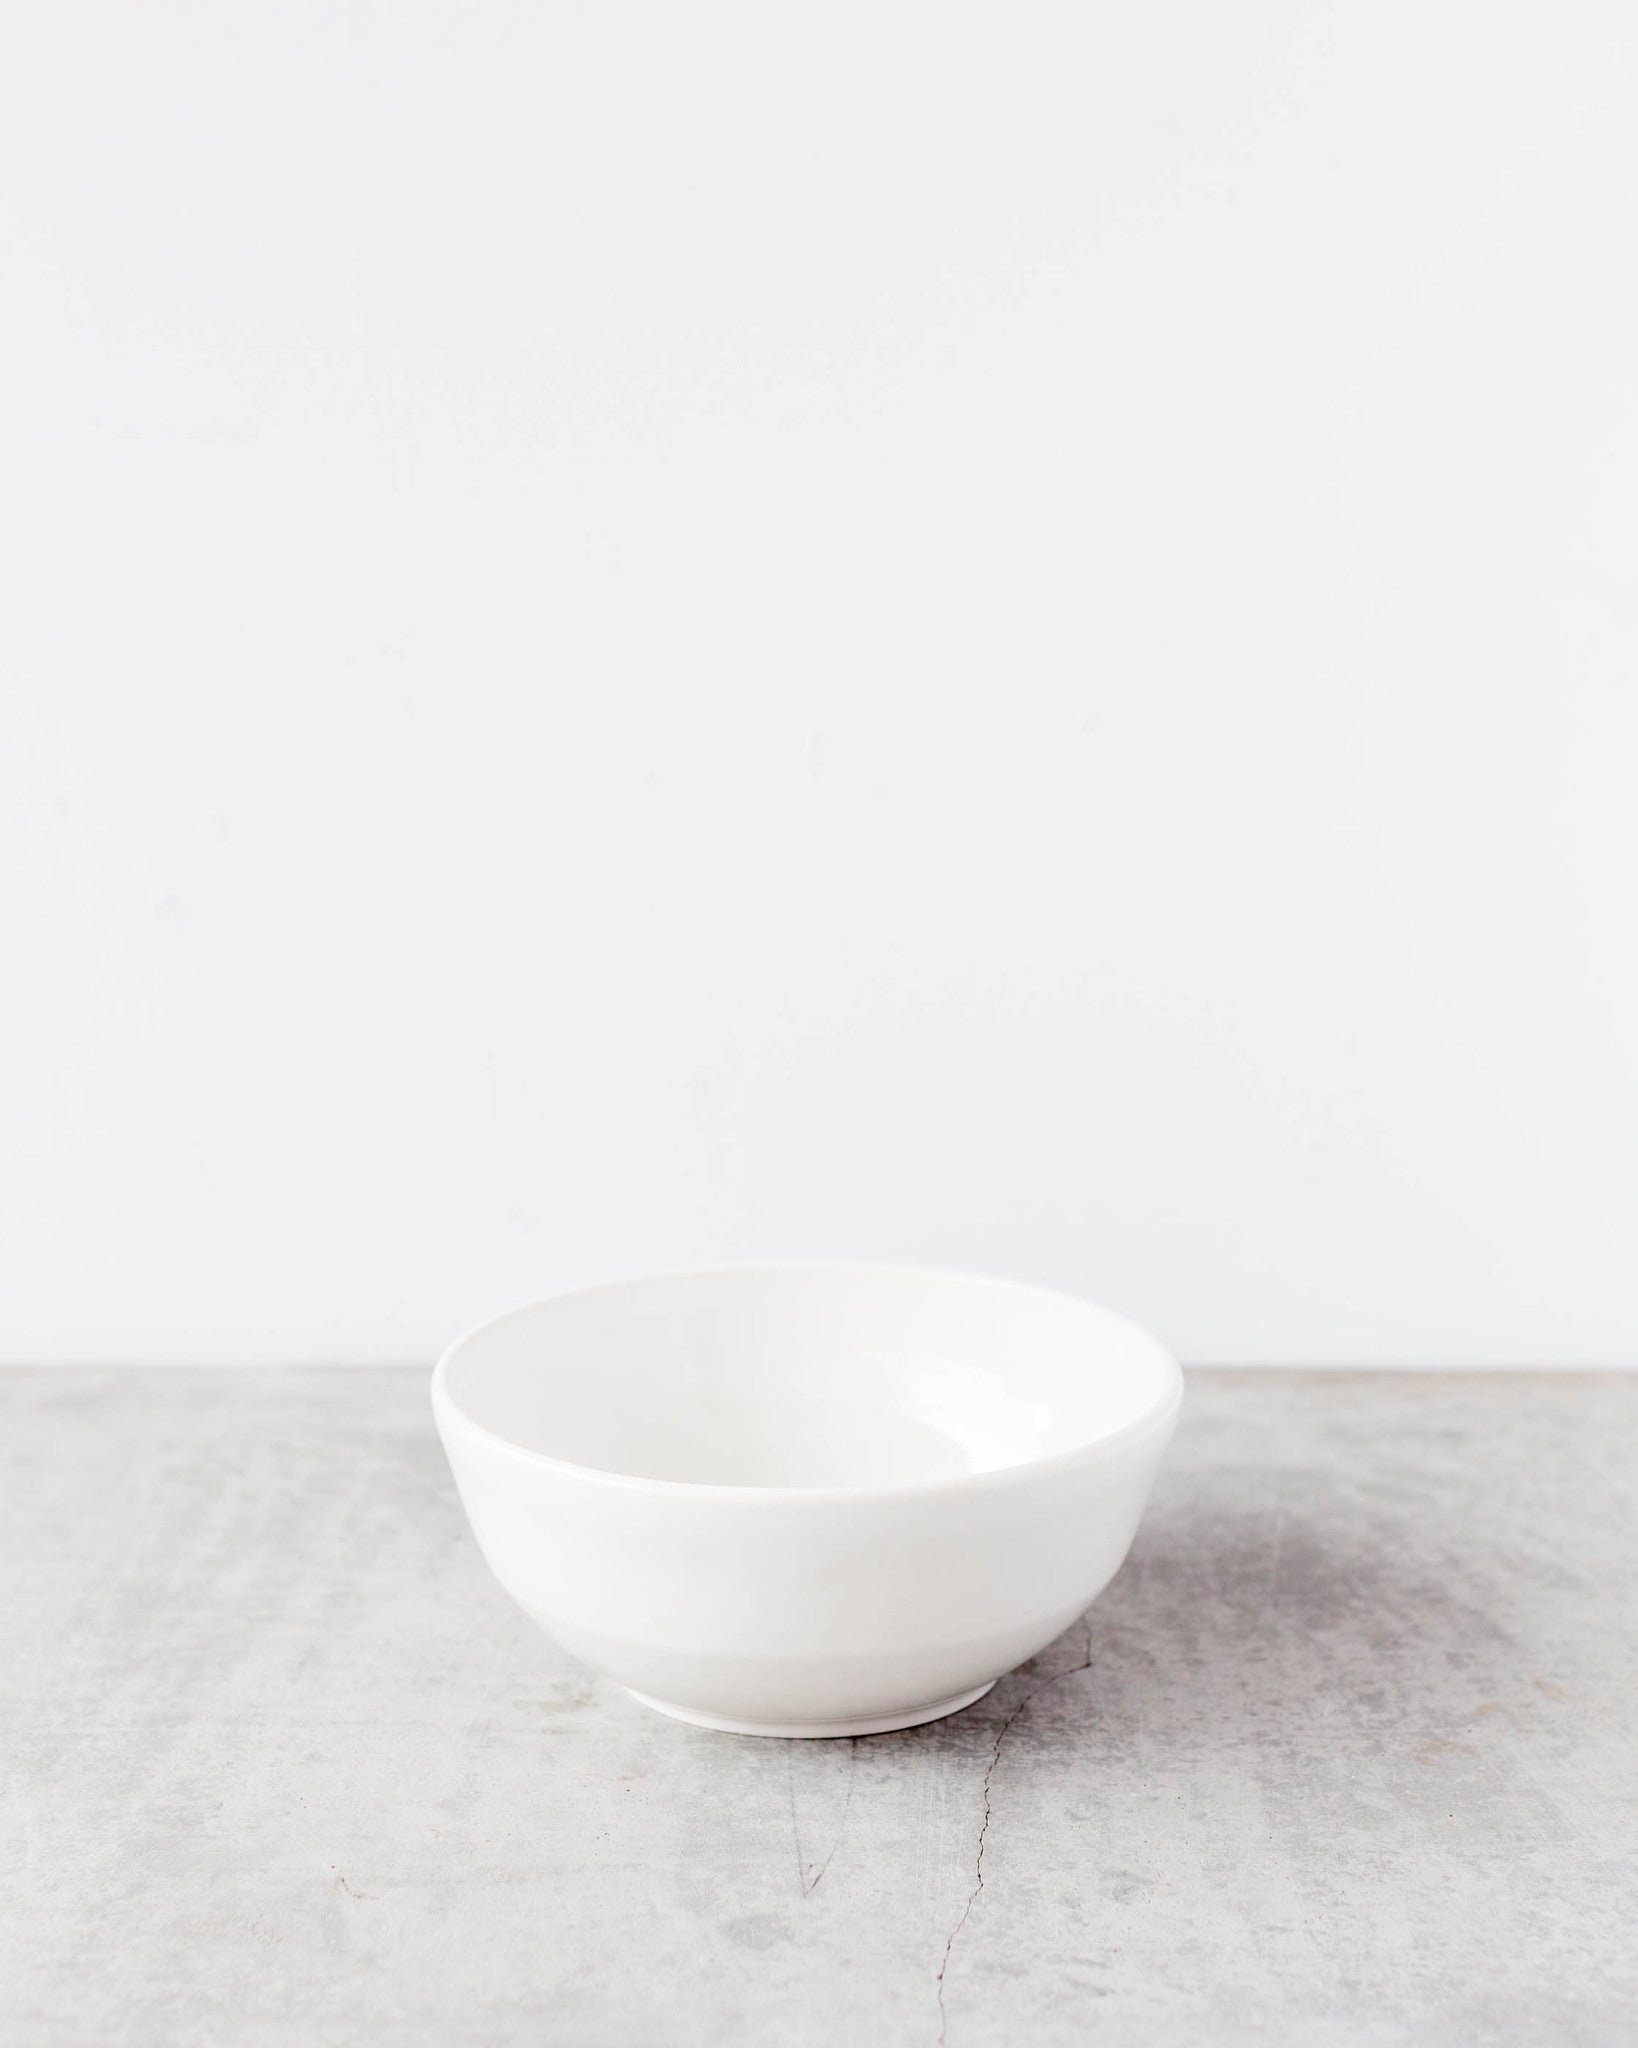 Dahlhaus Small Bowl in White